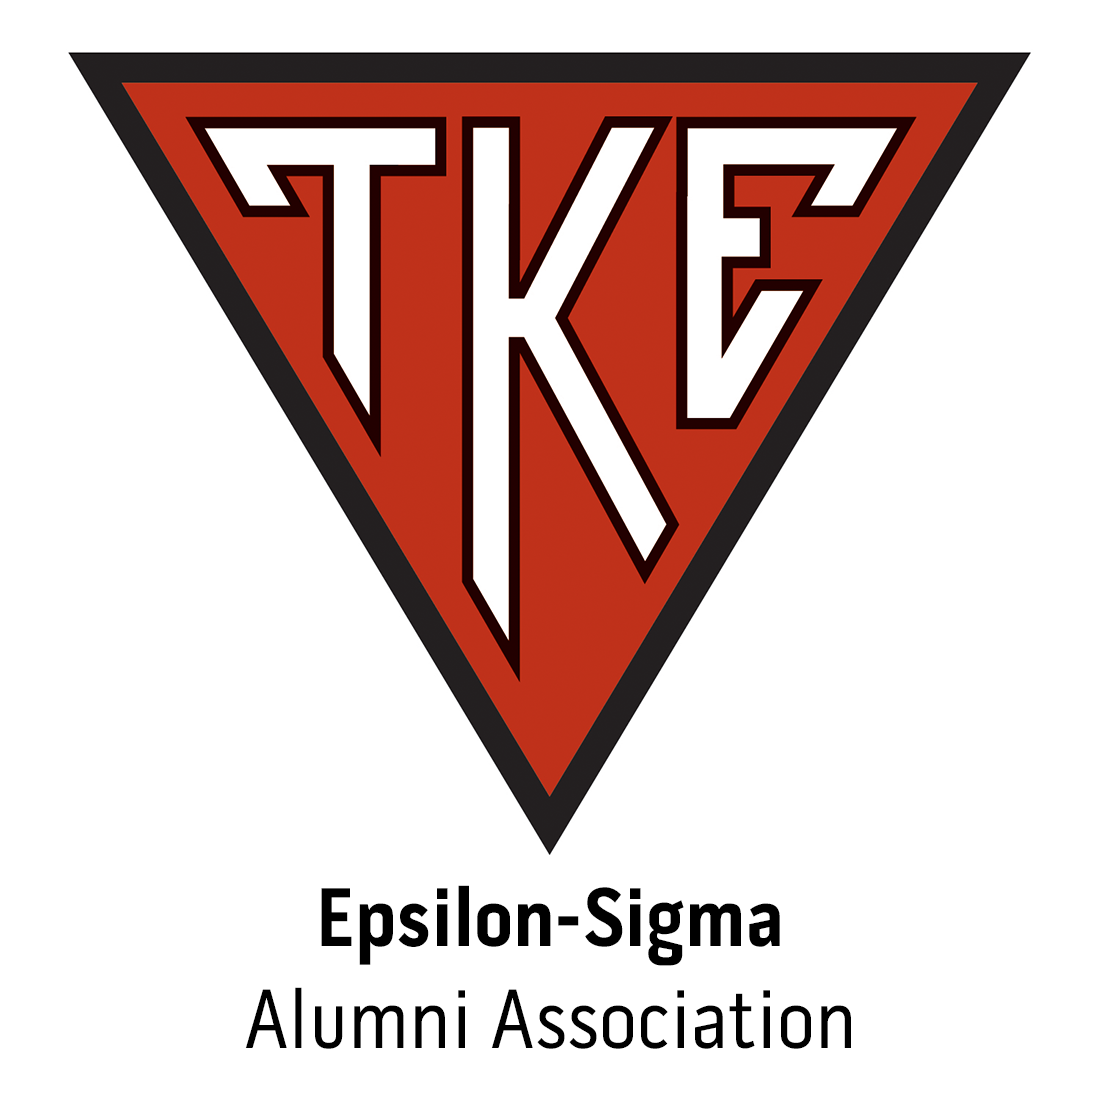 Epsilon-Sigma Alumni Association at University of Central Oklahoma